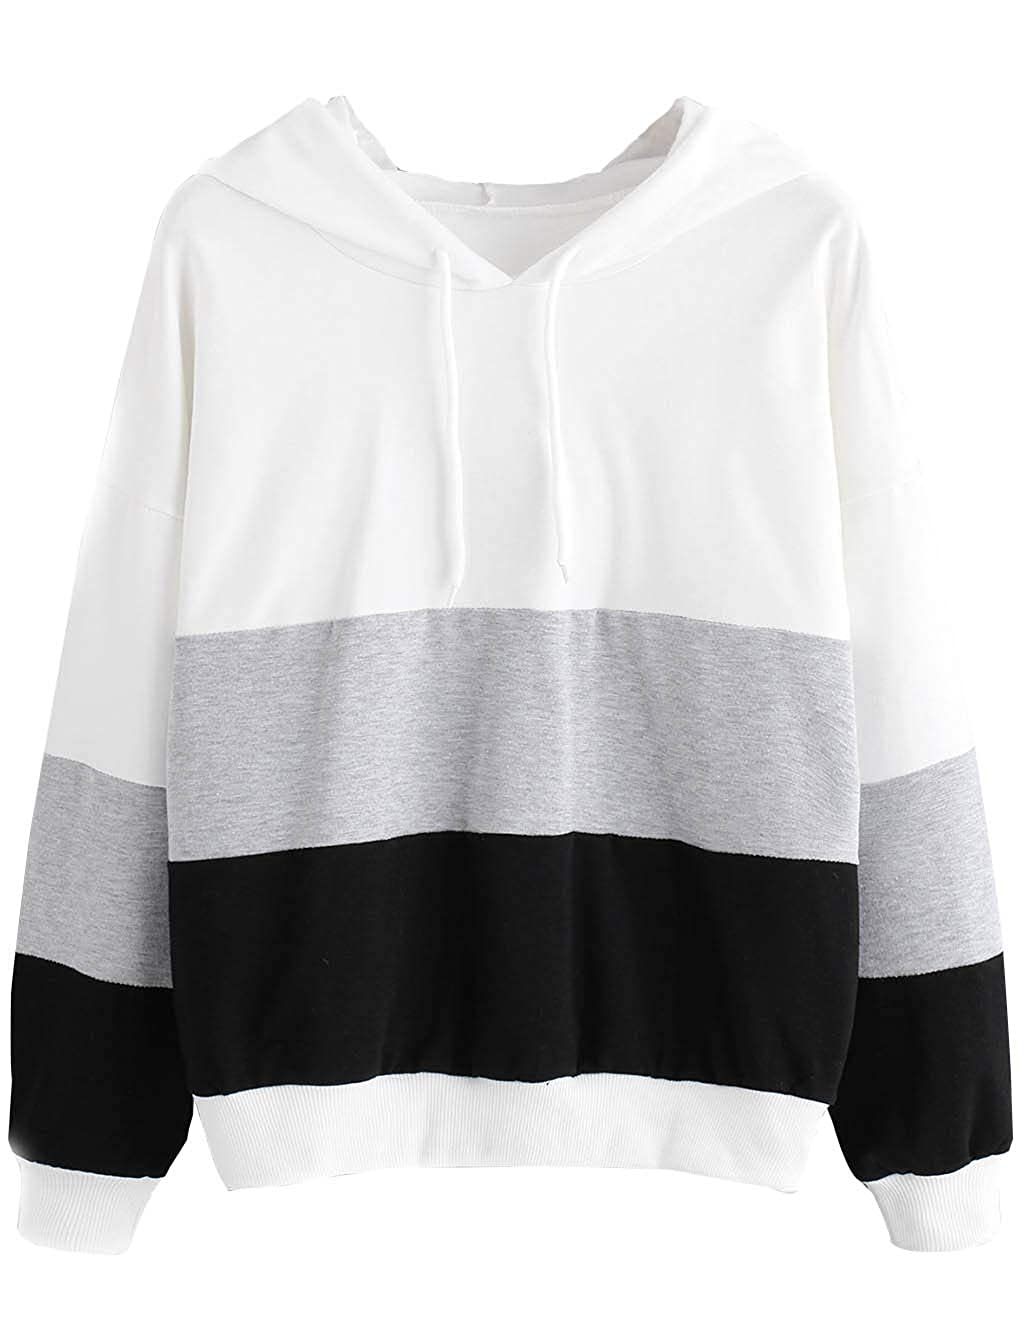 Womens Tunic Hoodie Patchwork Tops Sweatshirts Clearance Teen Girls Raglan Sleeve Pullover Jumper Sweater Jacket